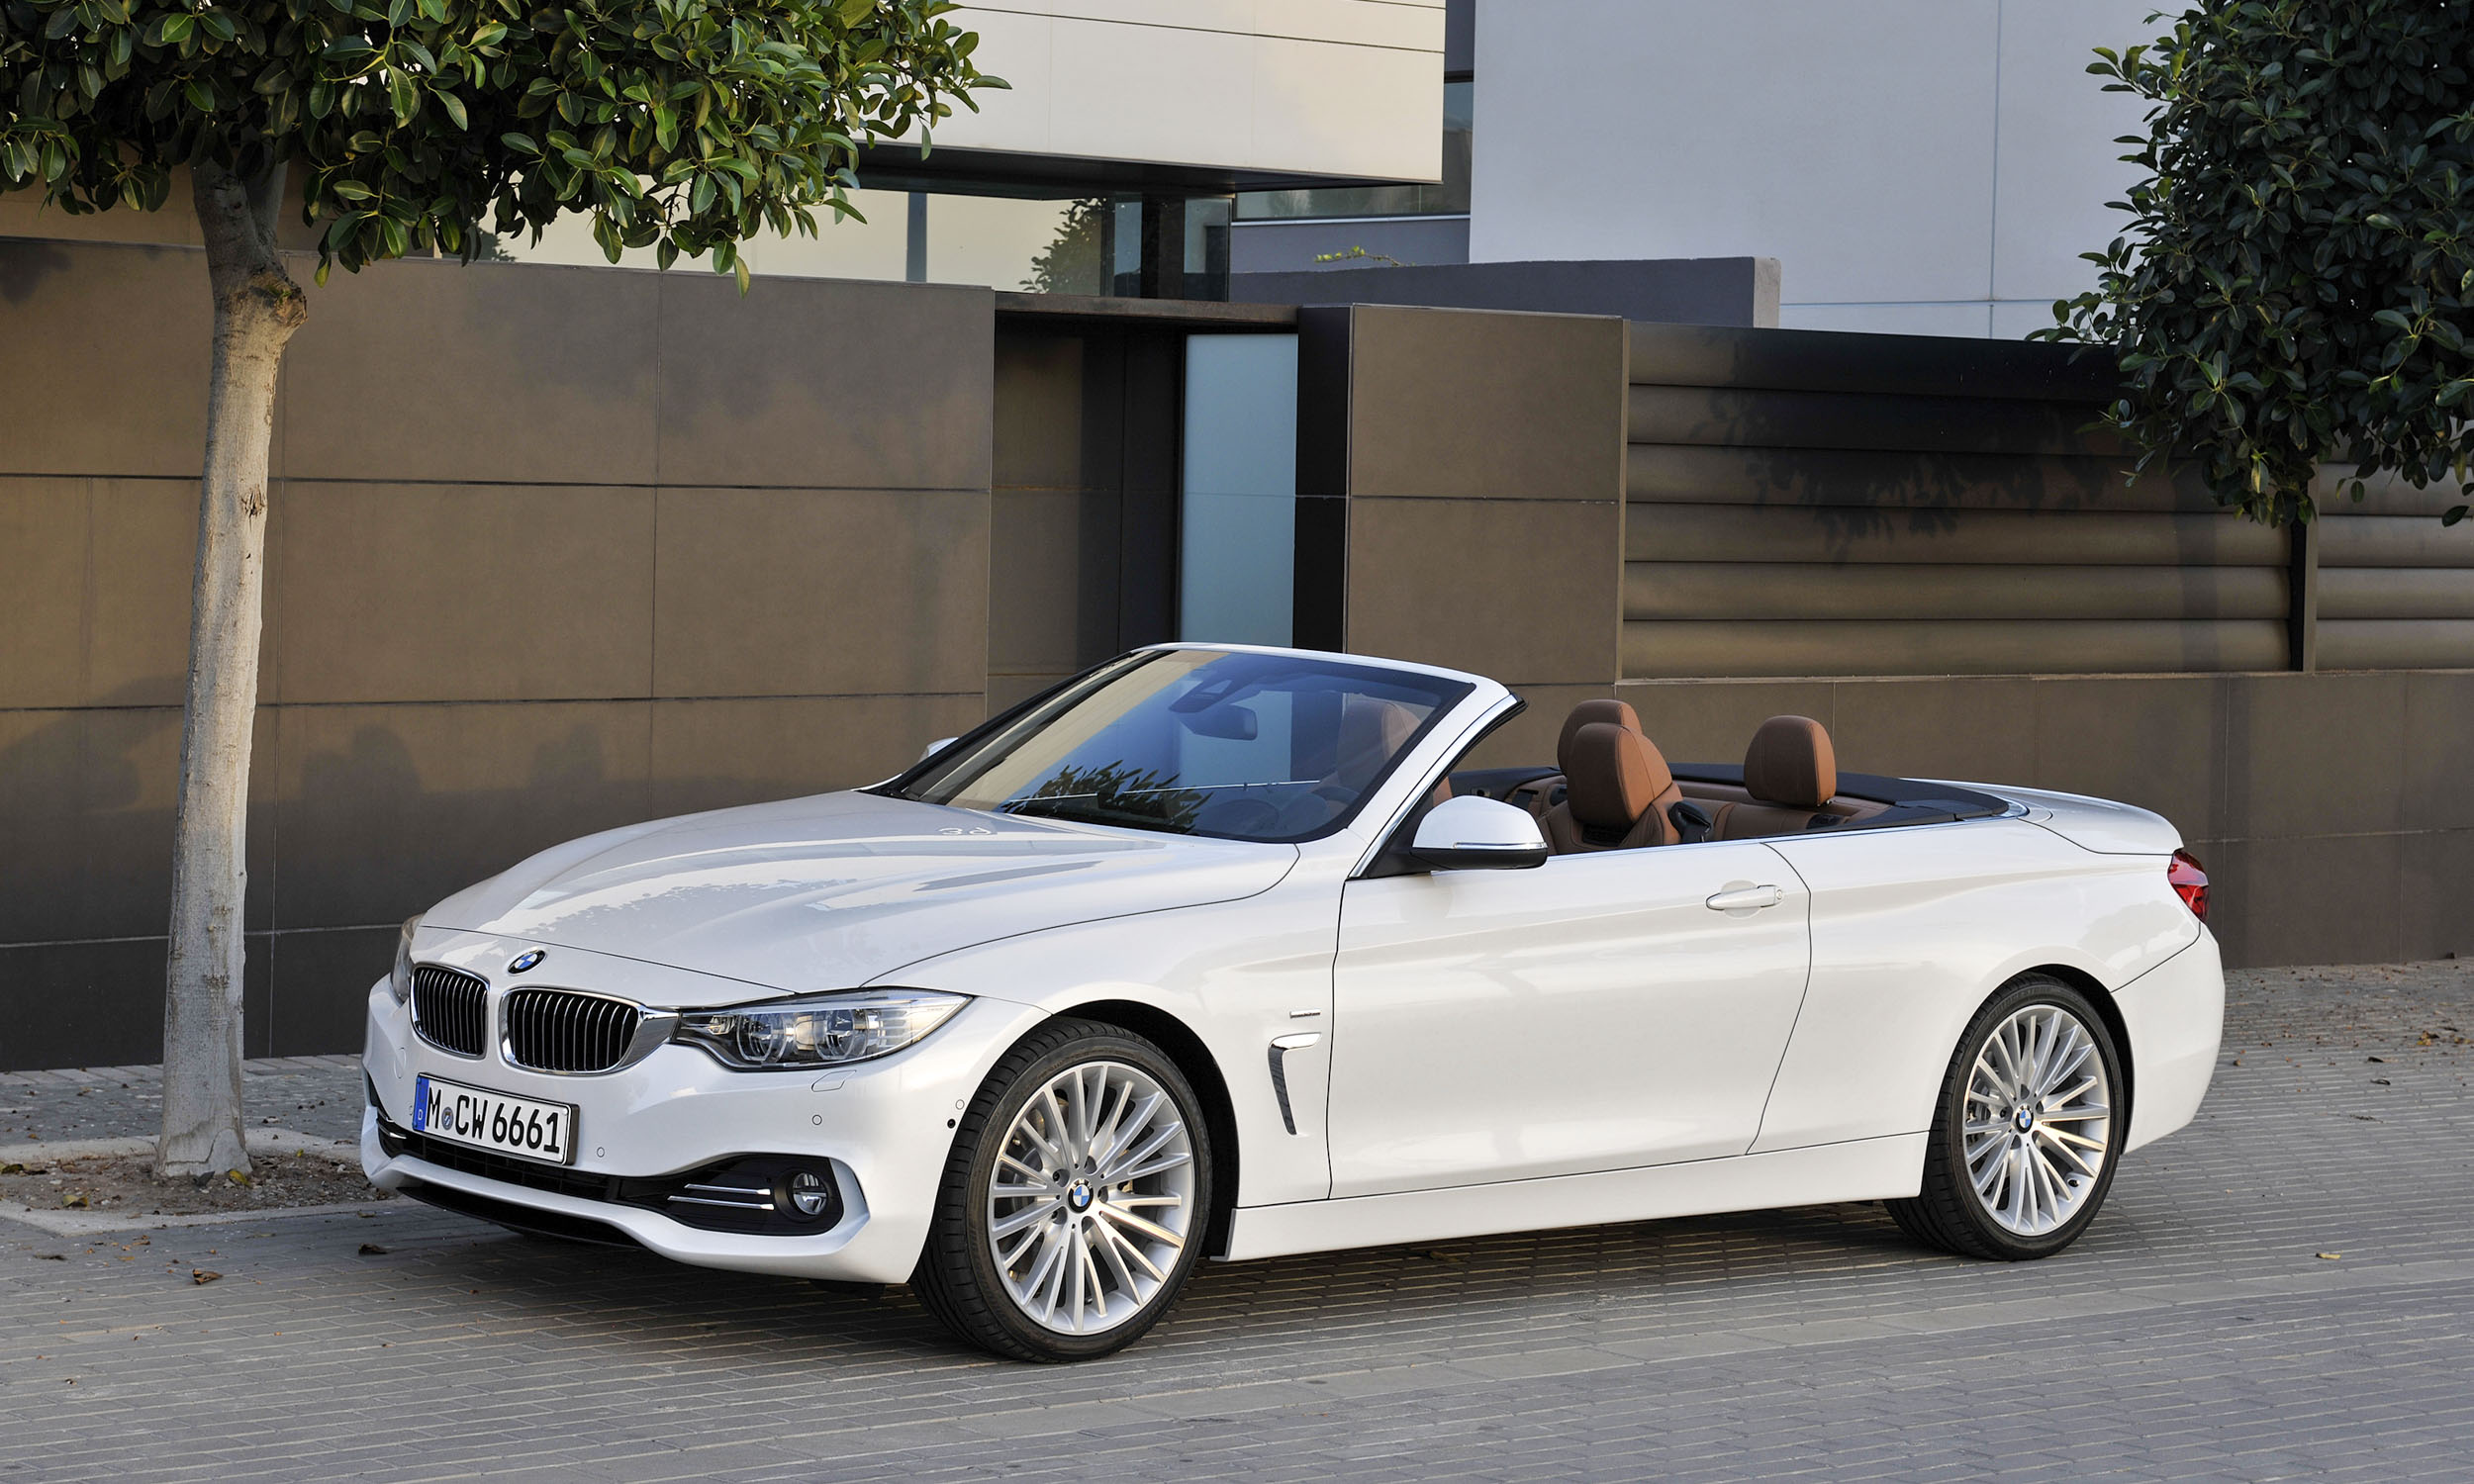 Hot Drop Tops Convertibles Of The Model Year AutoNXT - 4 door convertible bmw